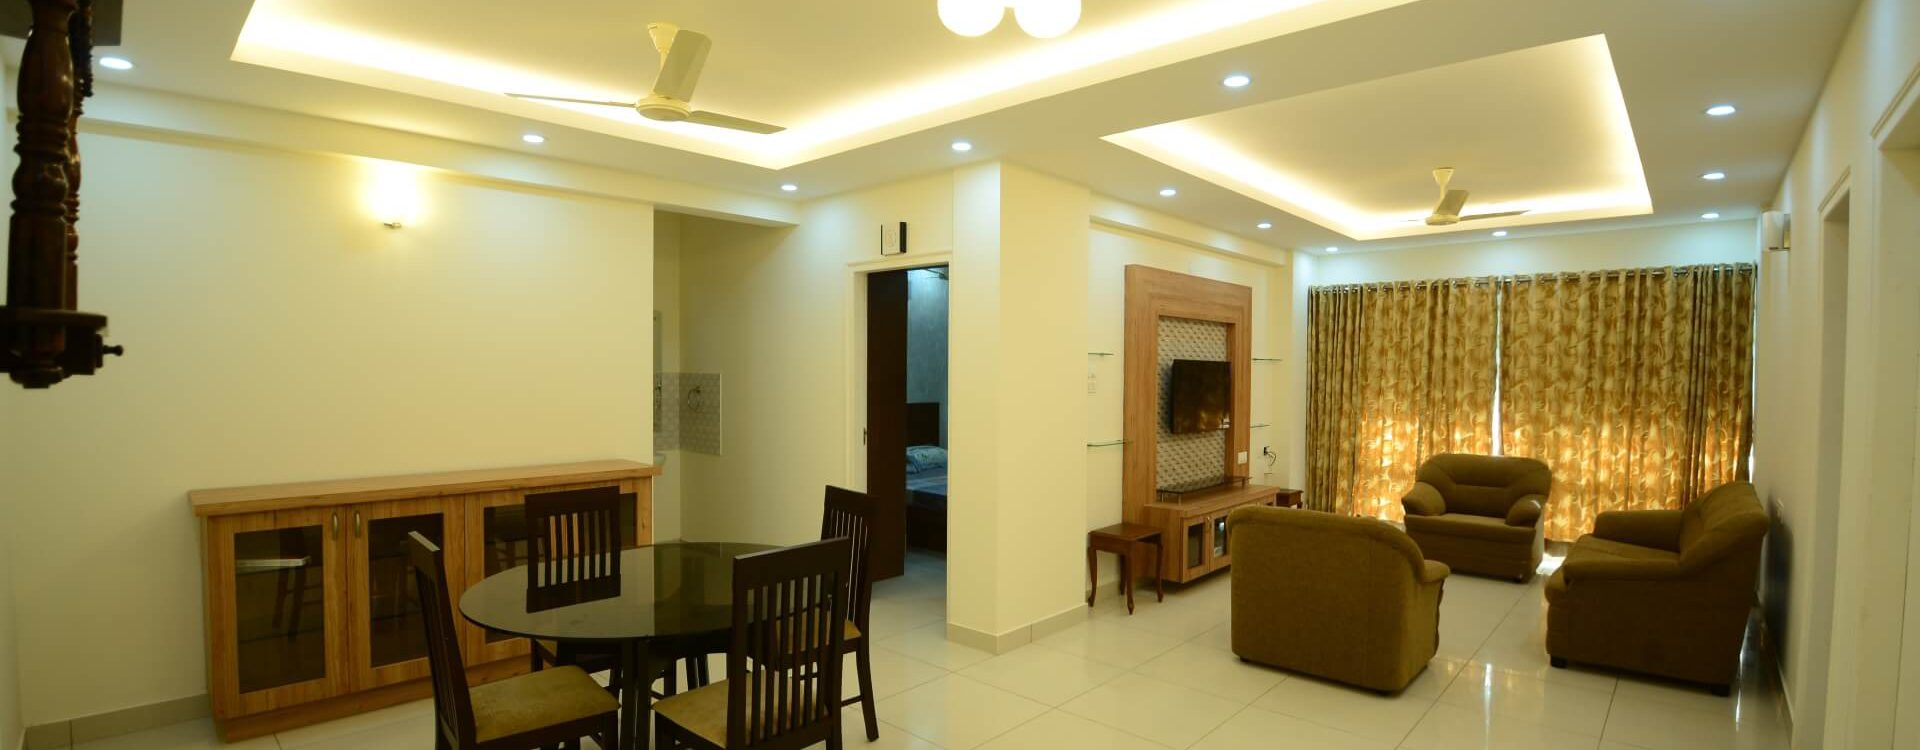 Mr. Nayak's Residence at The Corniche Apartment, Mangalore